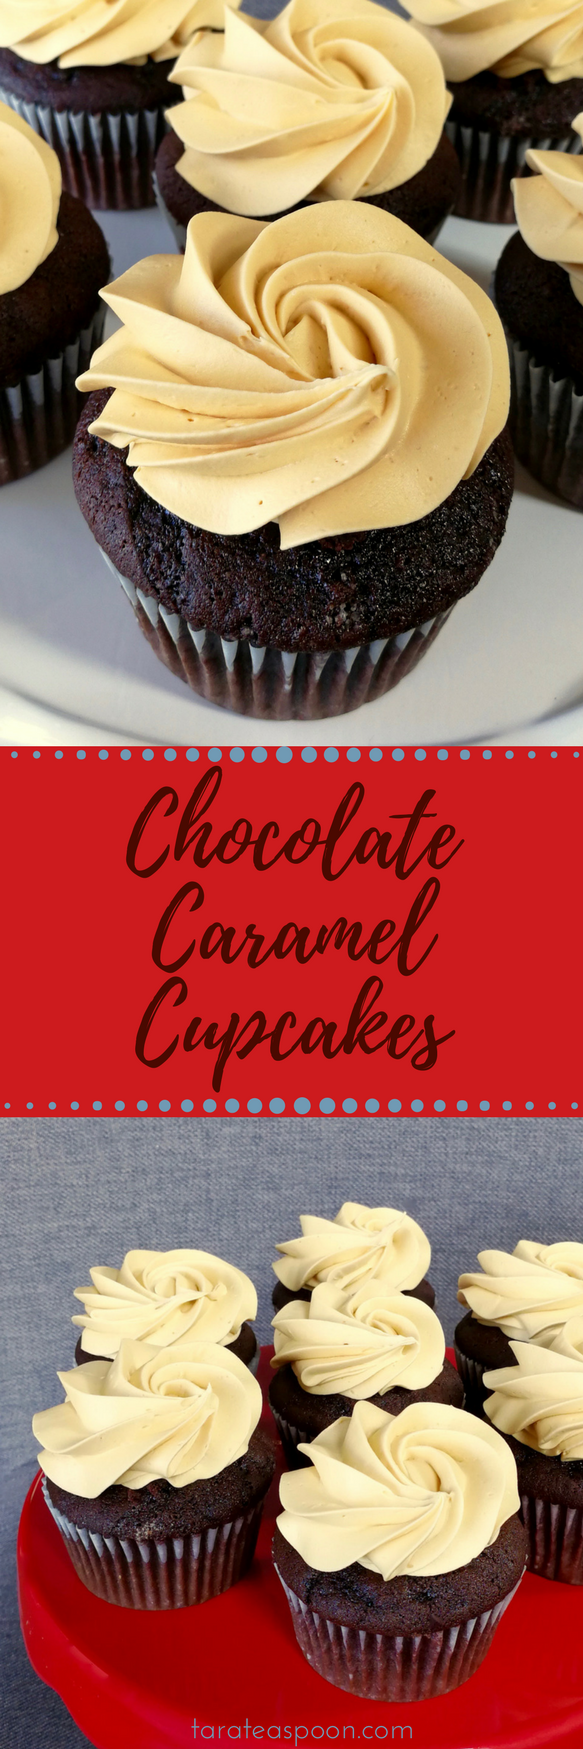 chocolate caramel cupcakes long pin